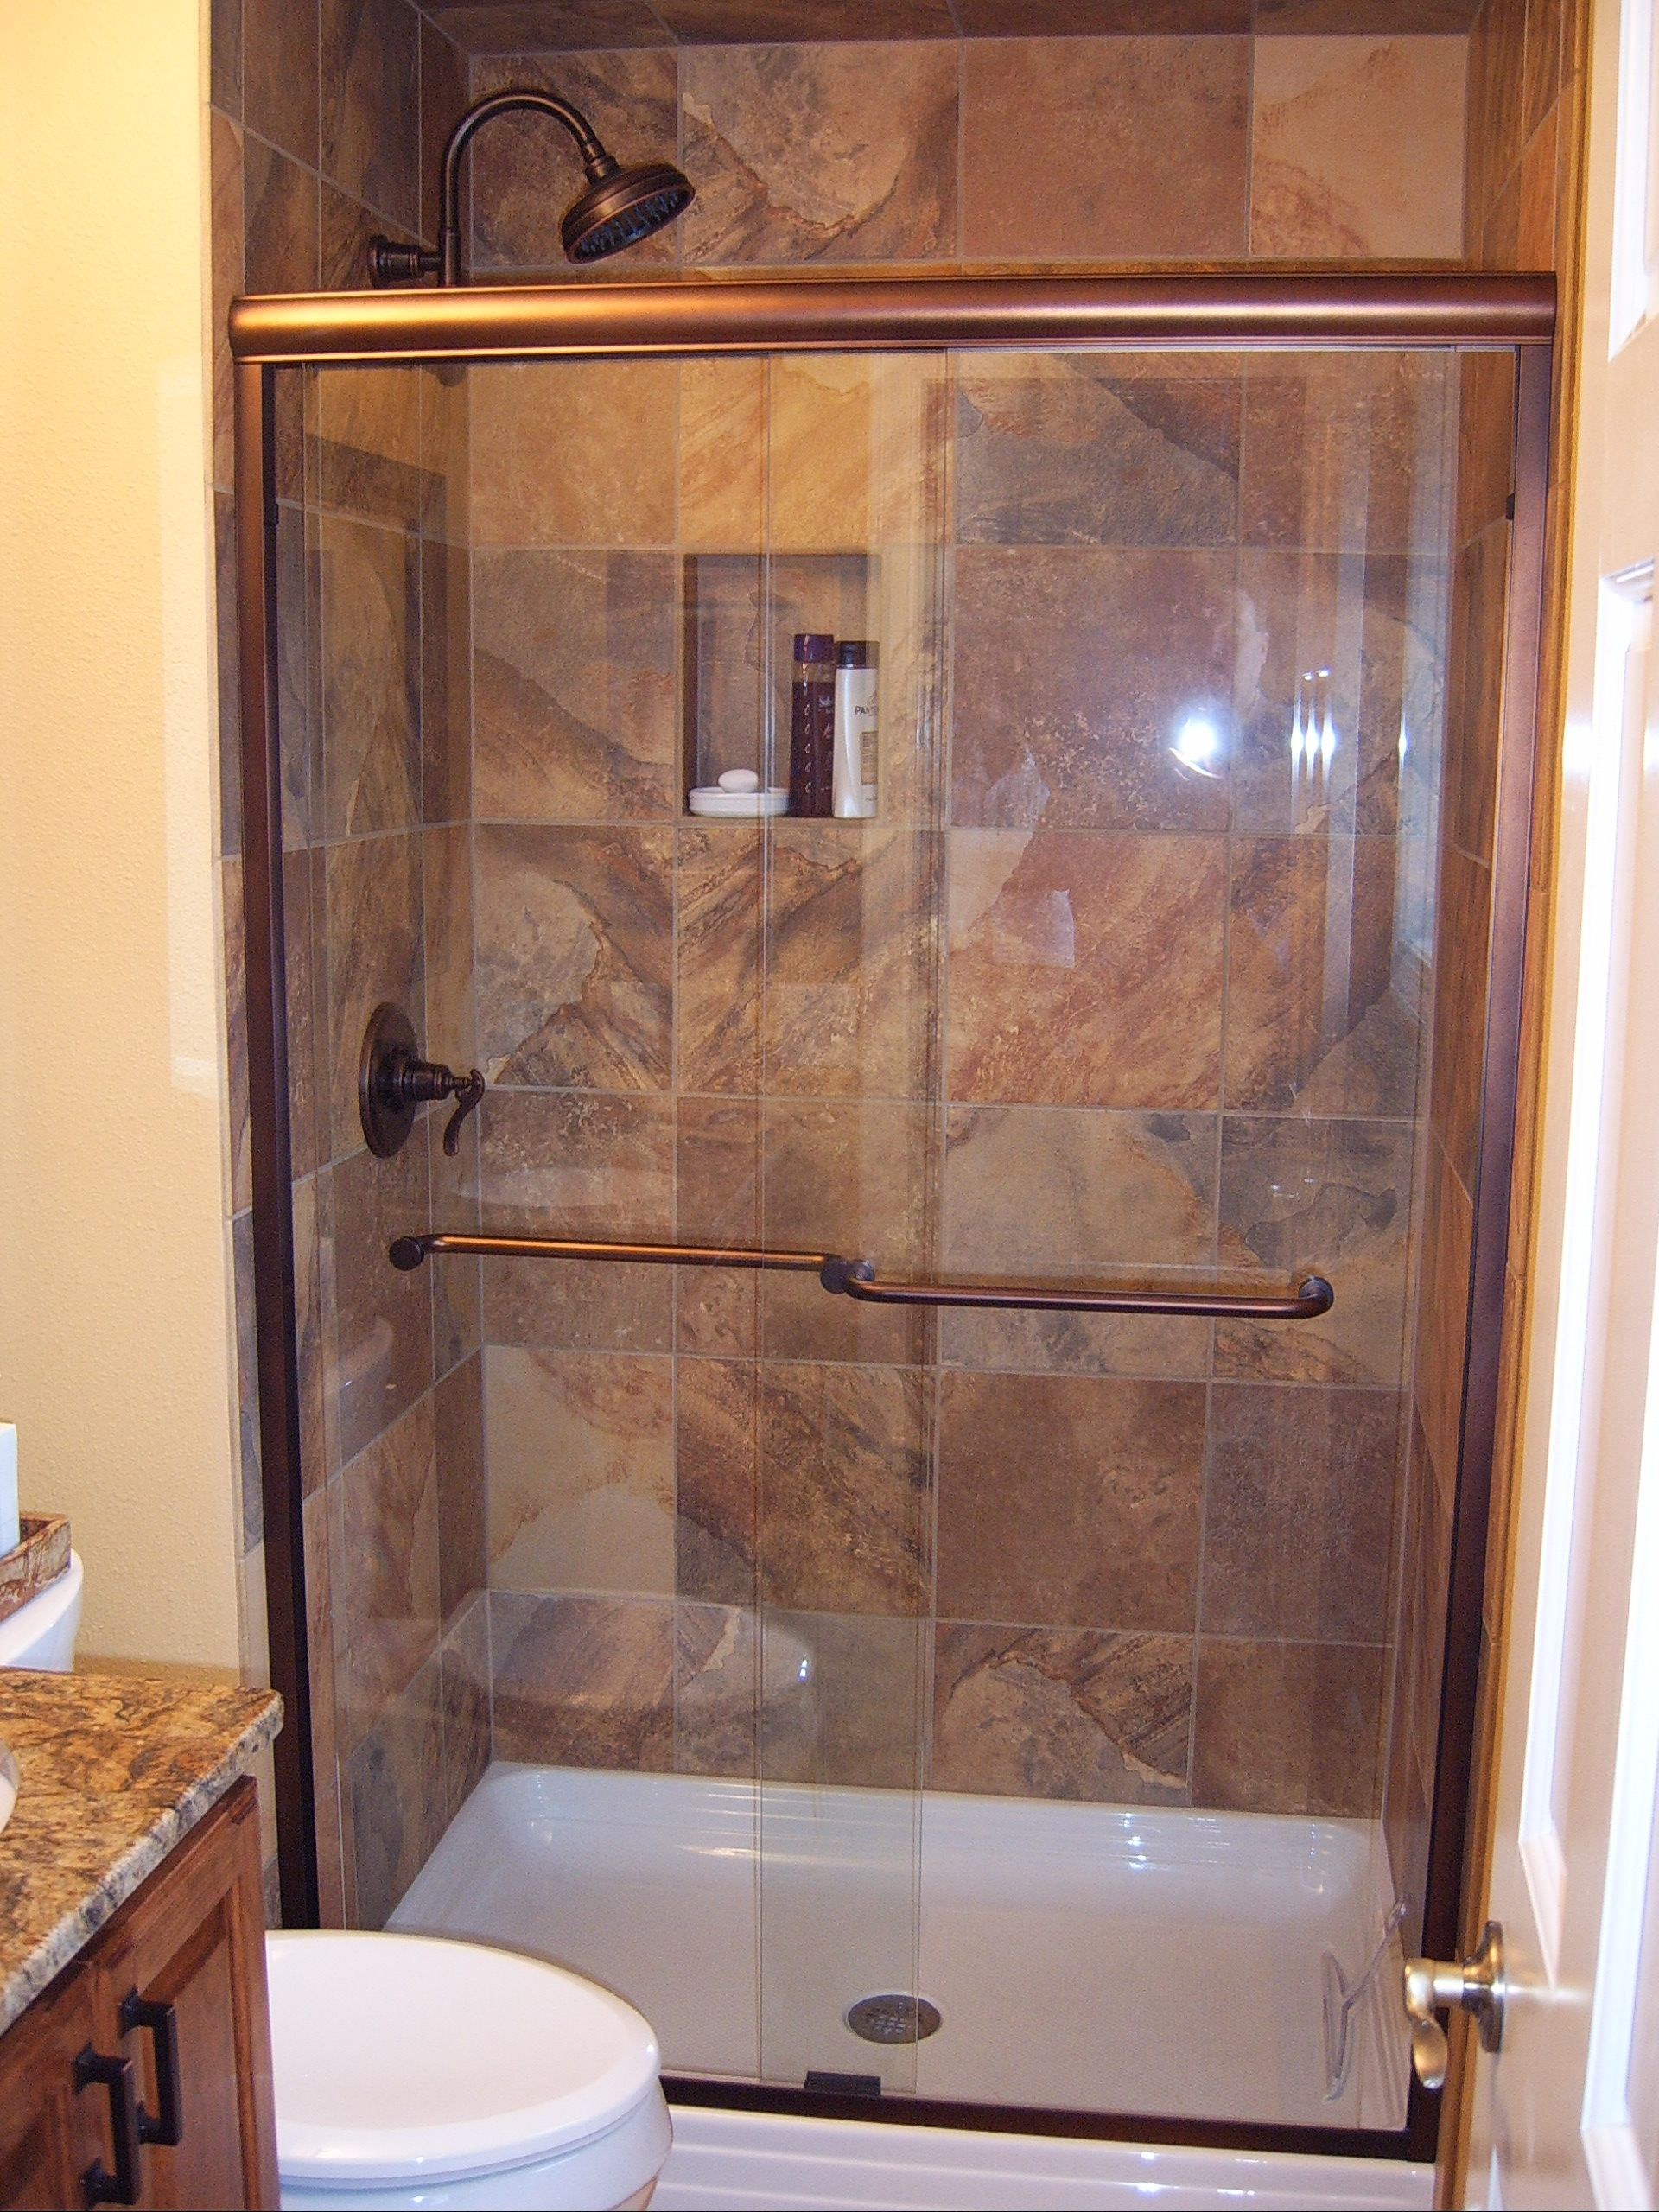 Besf Of Ideas Image Bathroom Remodel How To Remodel A Modern Bathroom With Luxury Interior Of